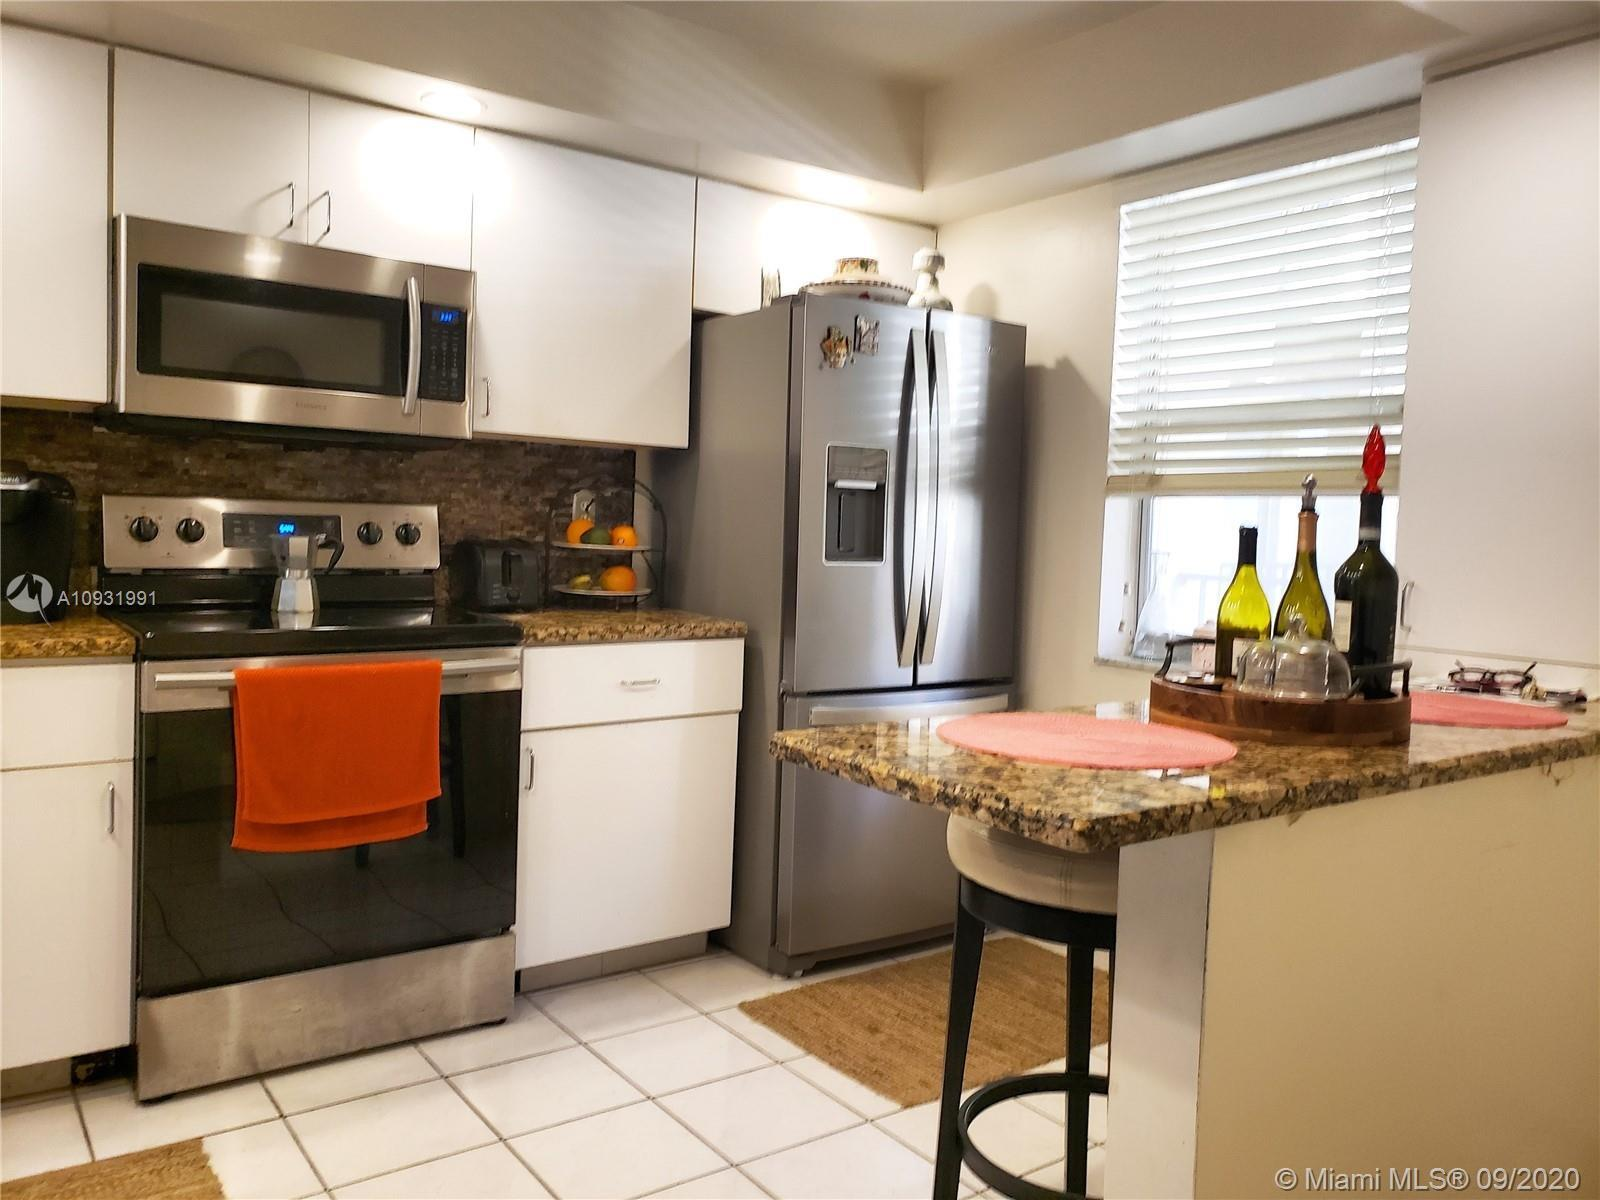 Live Florida's life stile at its best! This spacious 2/2 condo with water view had kitchen updated w